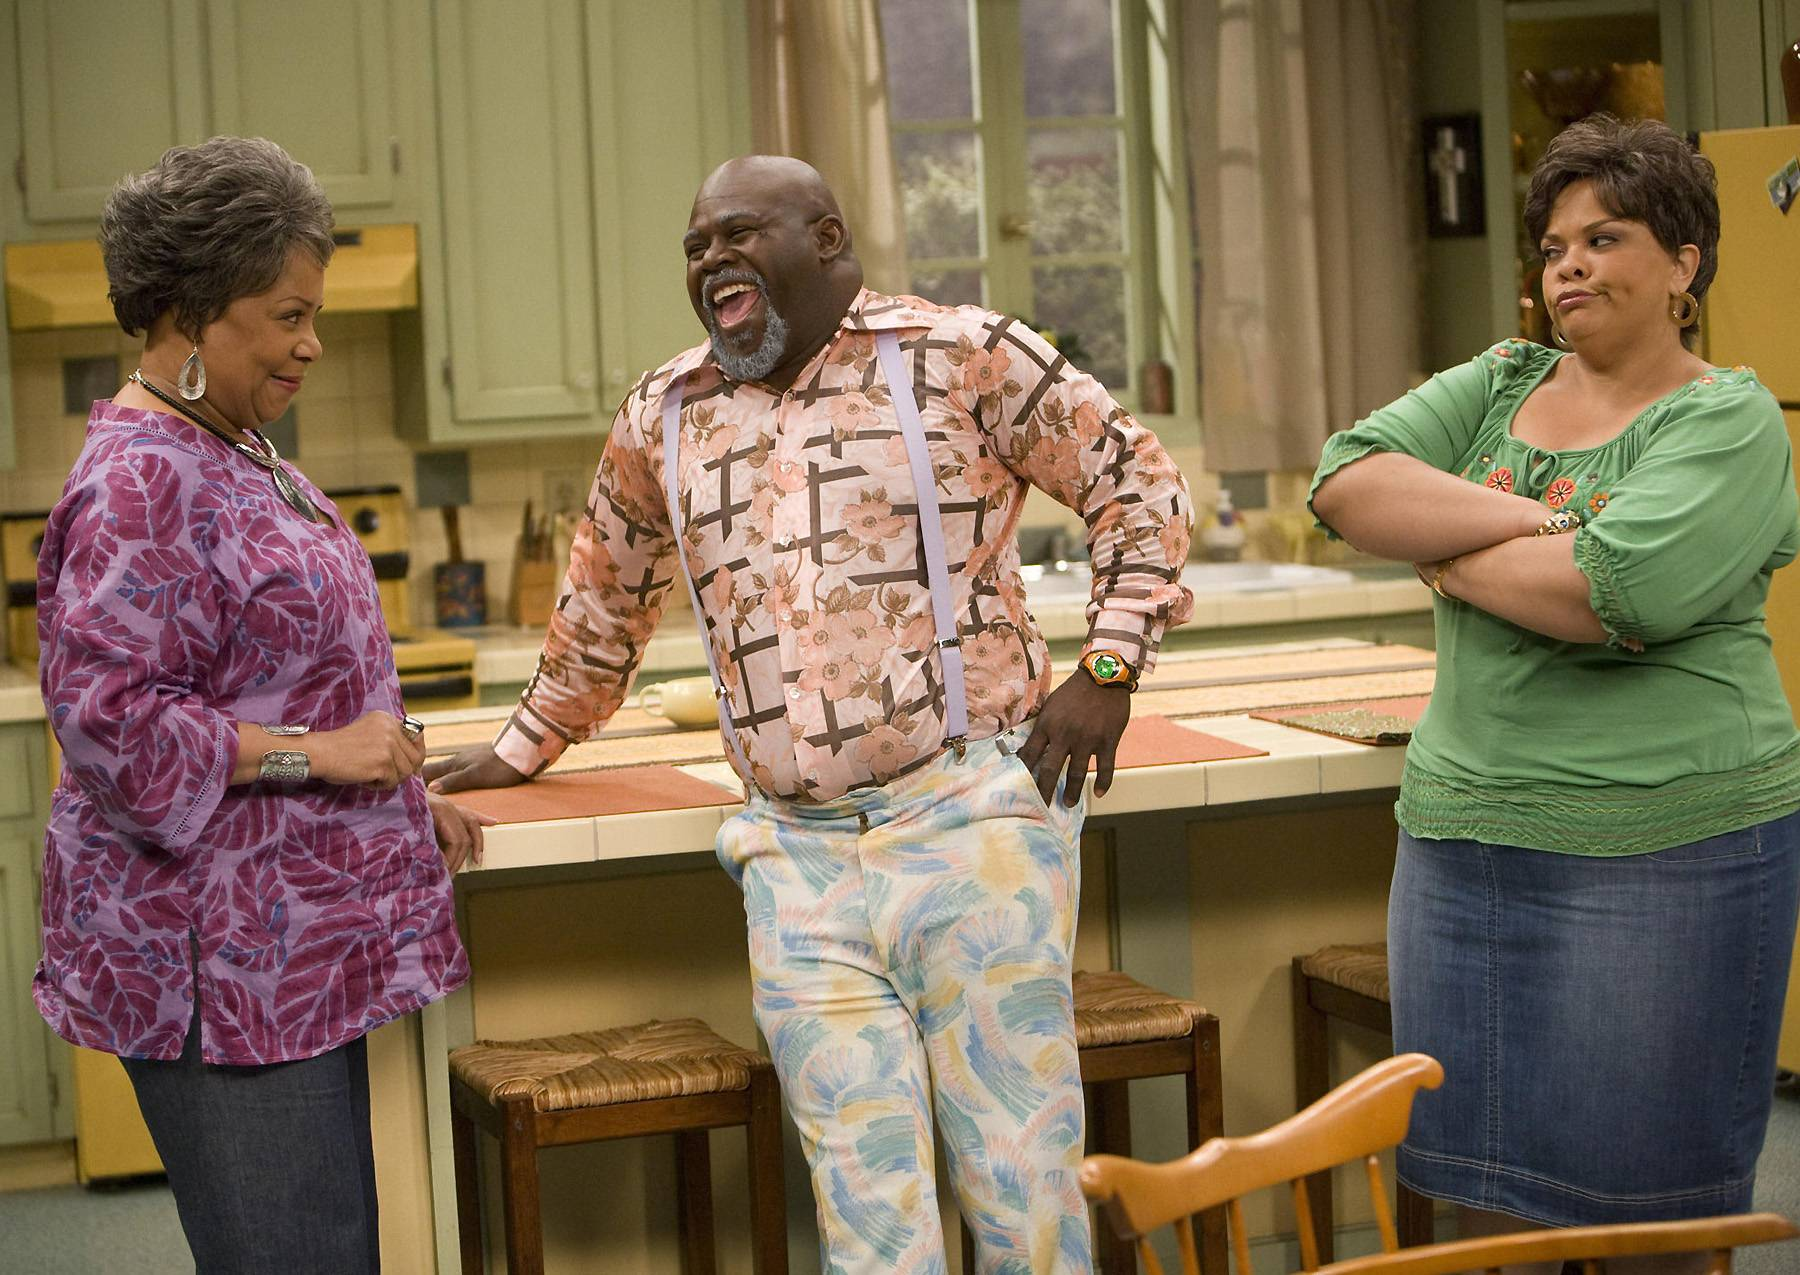 Meet the Browns - While Mann has sang background vocals for acts like Mary J. Blige and Yolanda Adams and appeared in countless stage plays, it was her role on TBS's Meet the Browns that saw the talented starlet enter America's homes and her character Cora evolve. (Photo: Lionsgate)